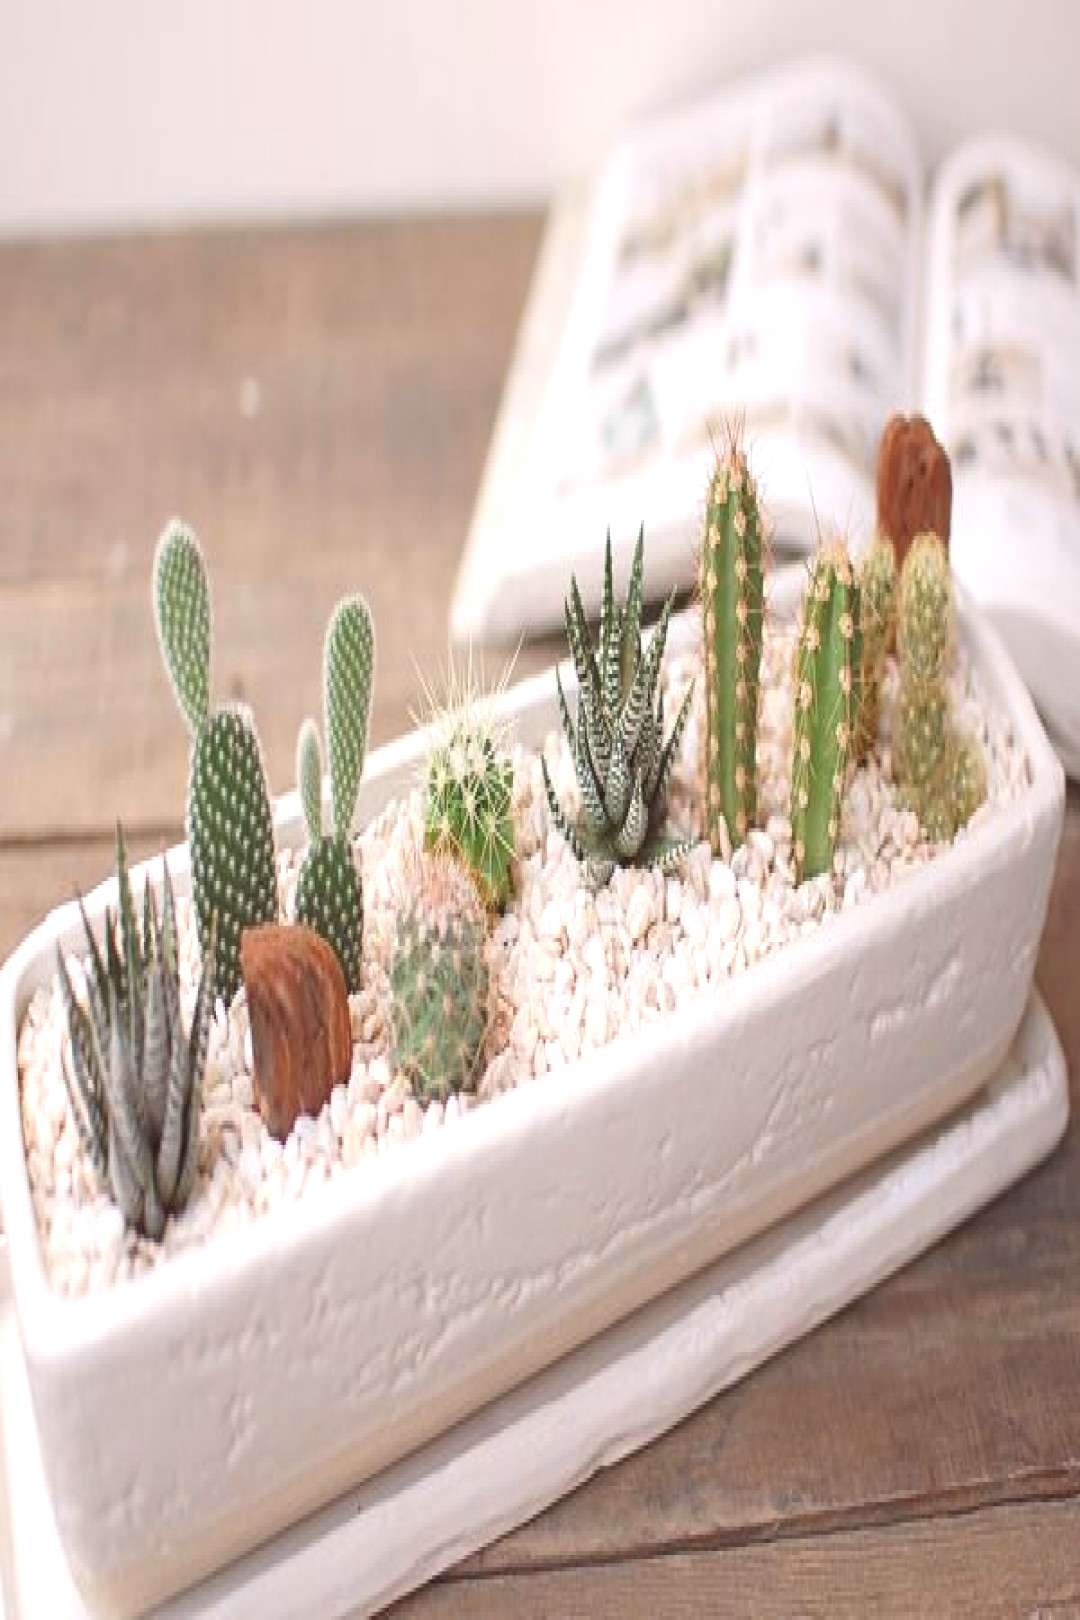 These Popular Cactus Arrangements are the Latest Trend for Adding Green to a Home cactus and succul